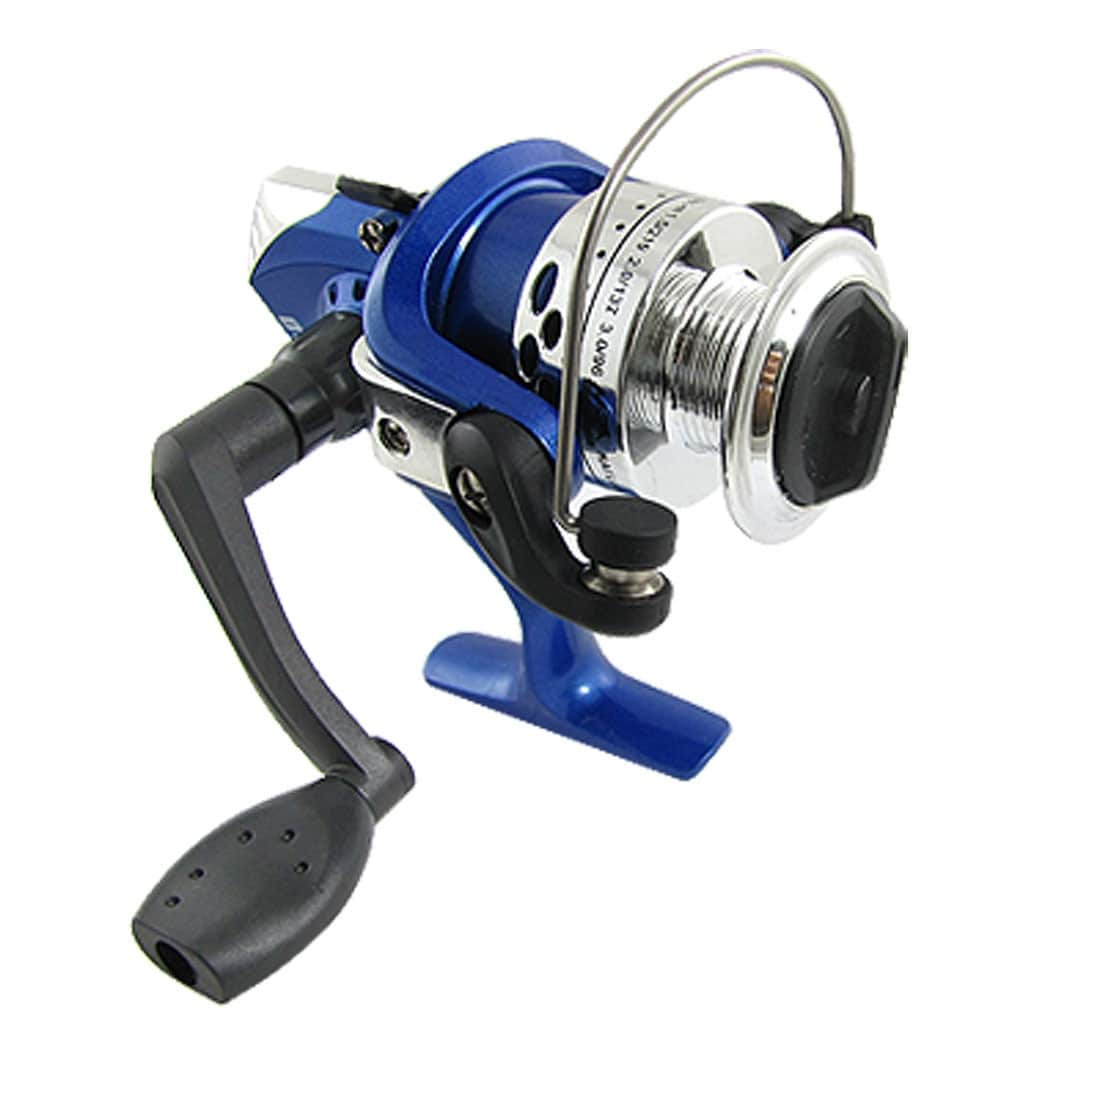 Unique Bargains 3 Ball Bearing 5.2:1 Gear Ratio Superior Fishing Reel Spinning Reel for Pro Angler